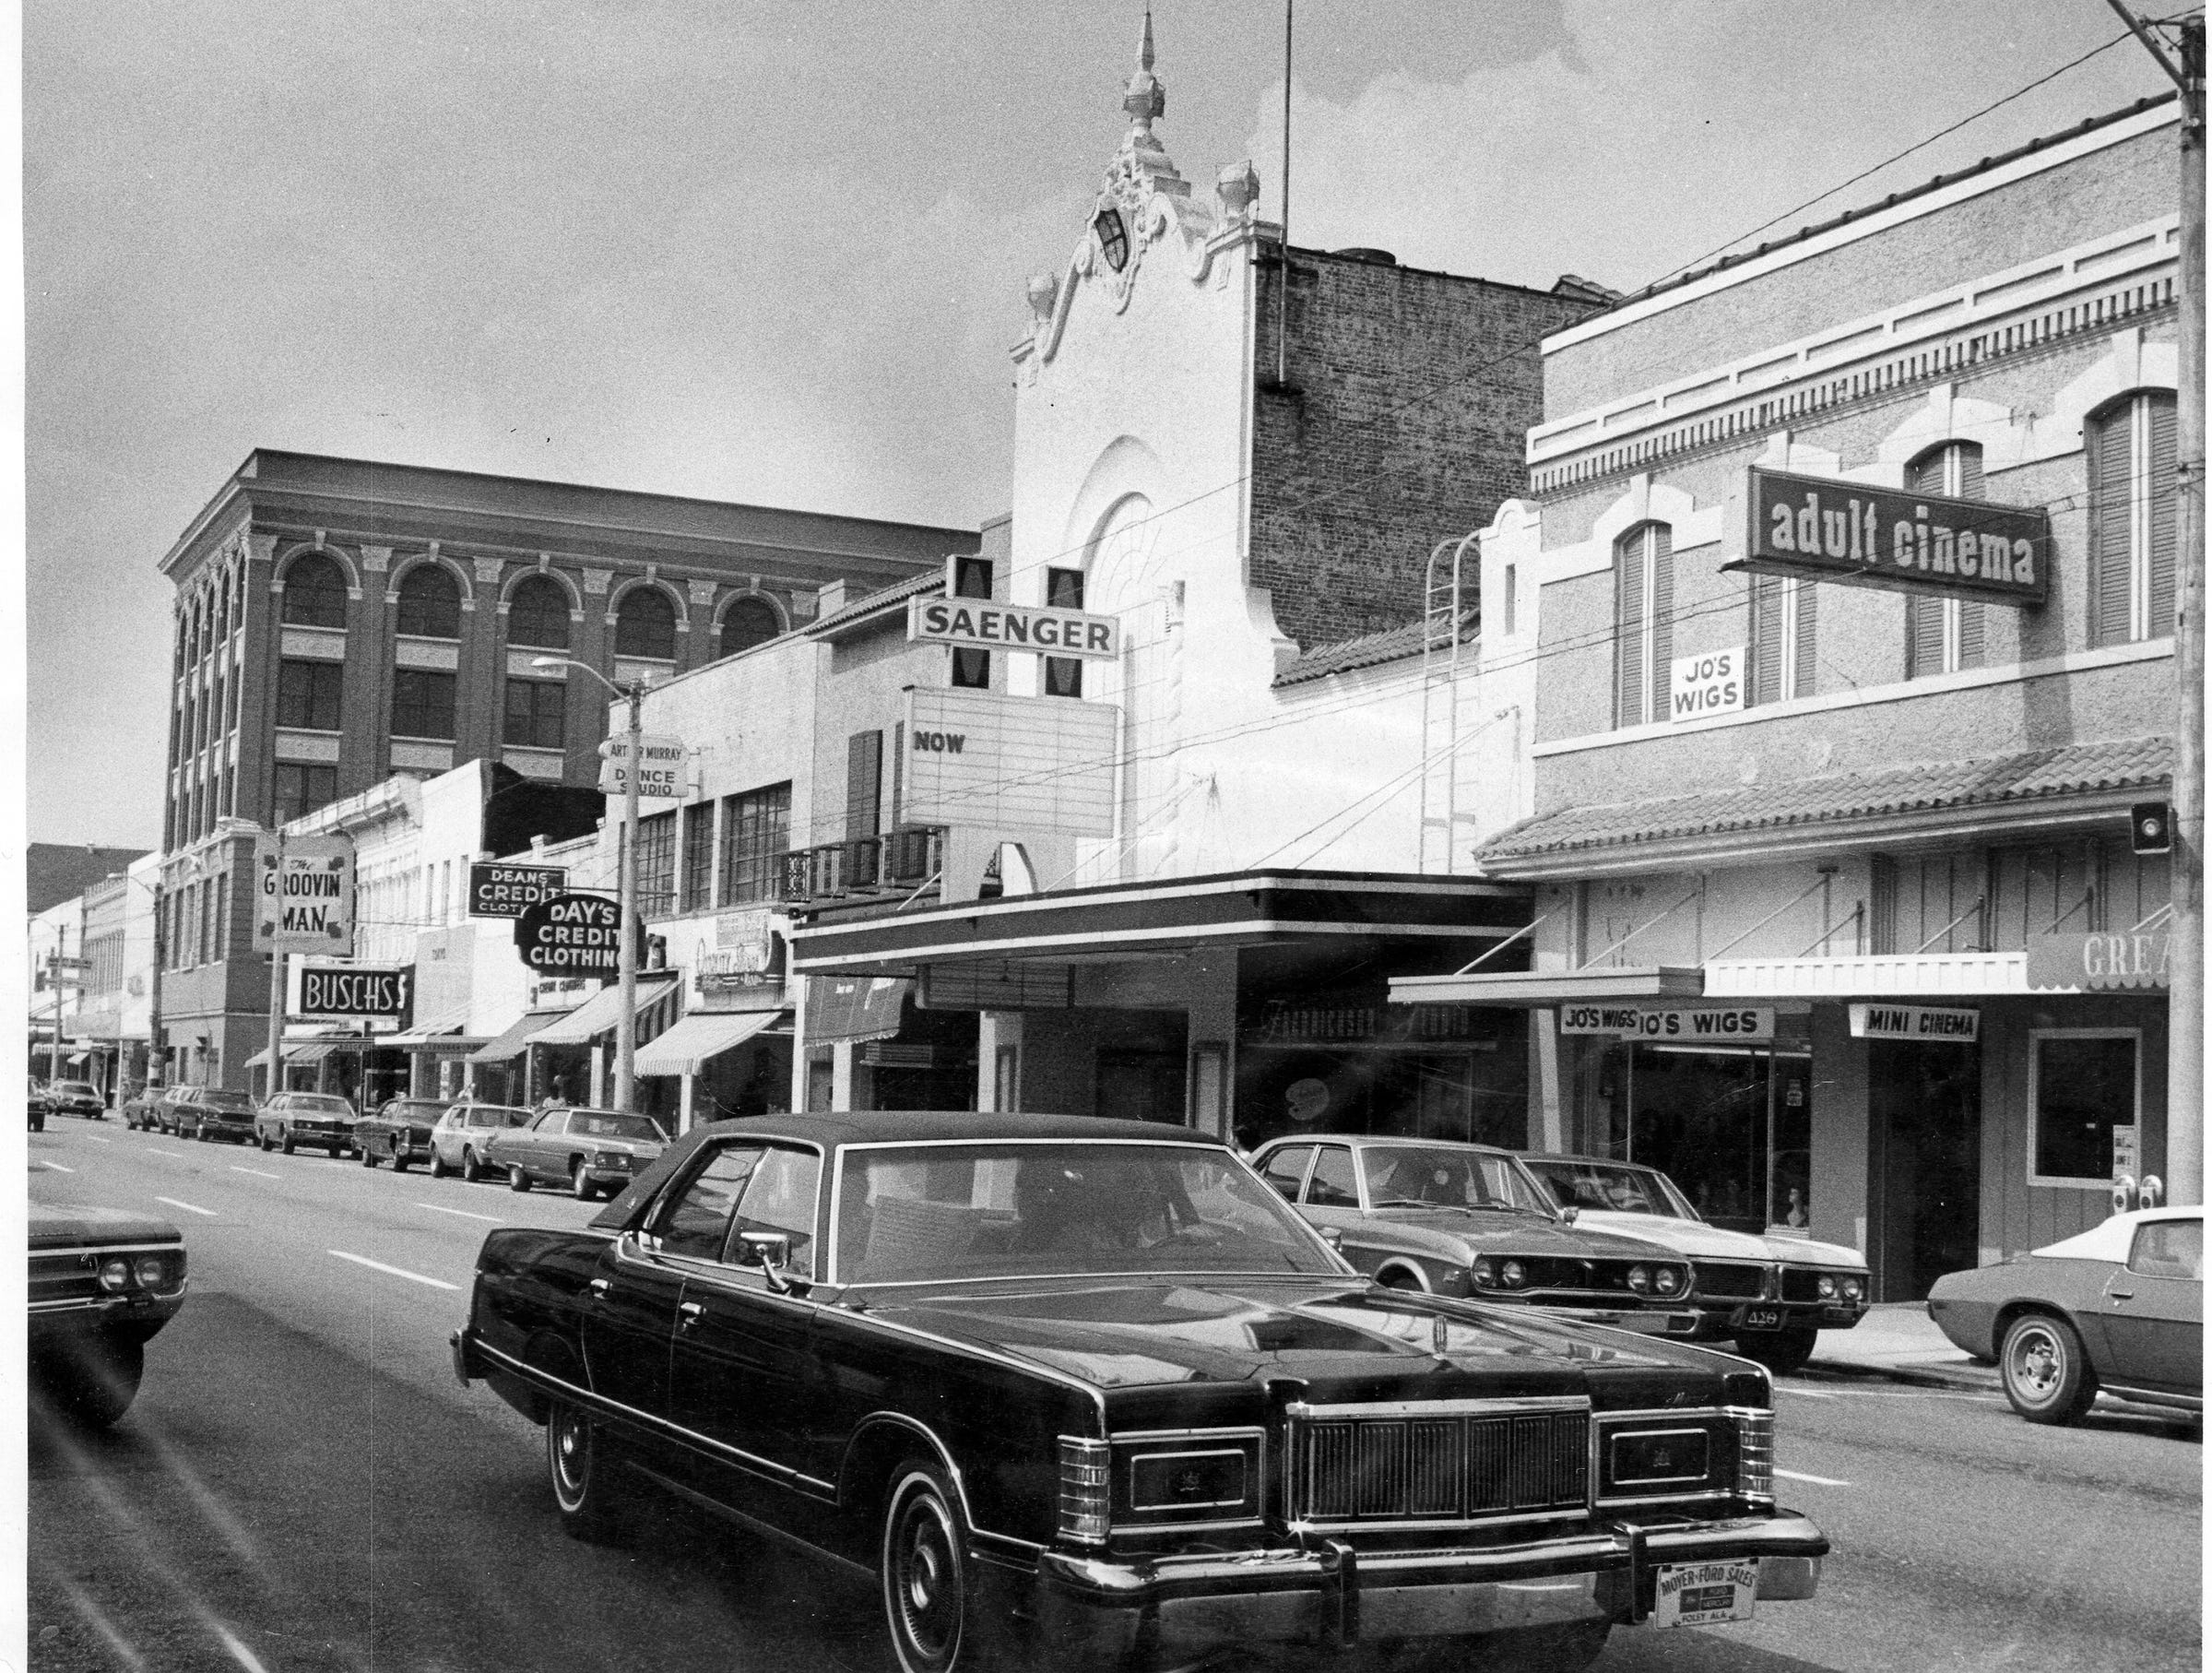 Saenger Theatre and other businesses on Palafox Street in 1970s.